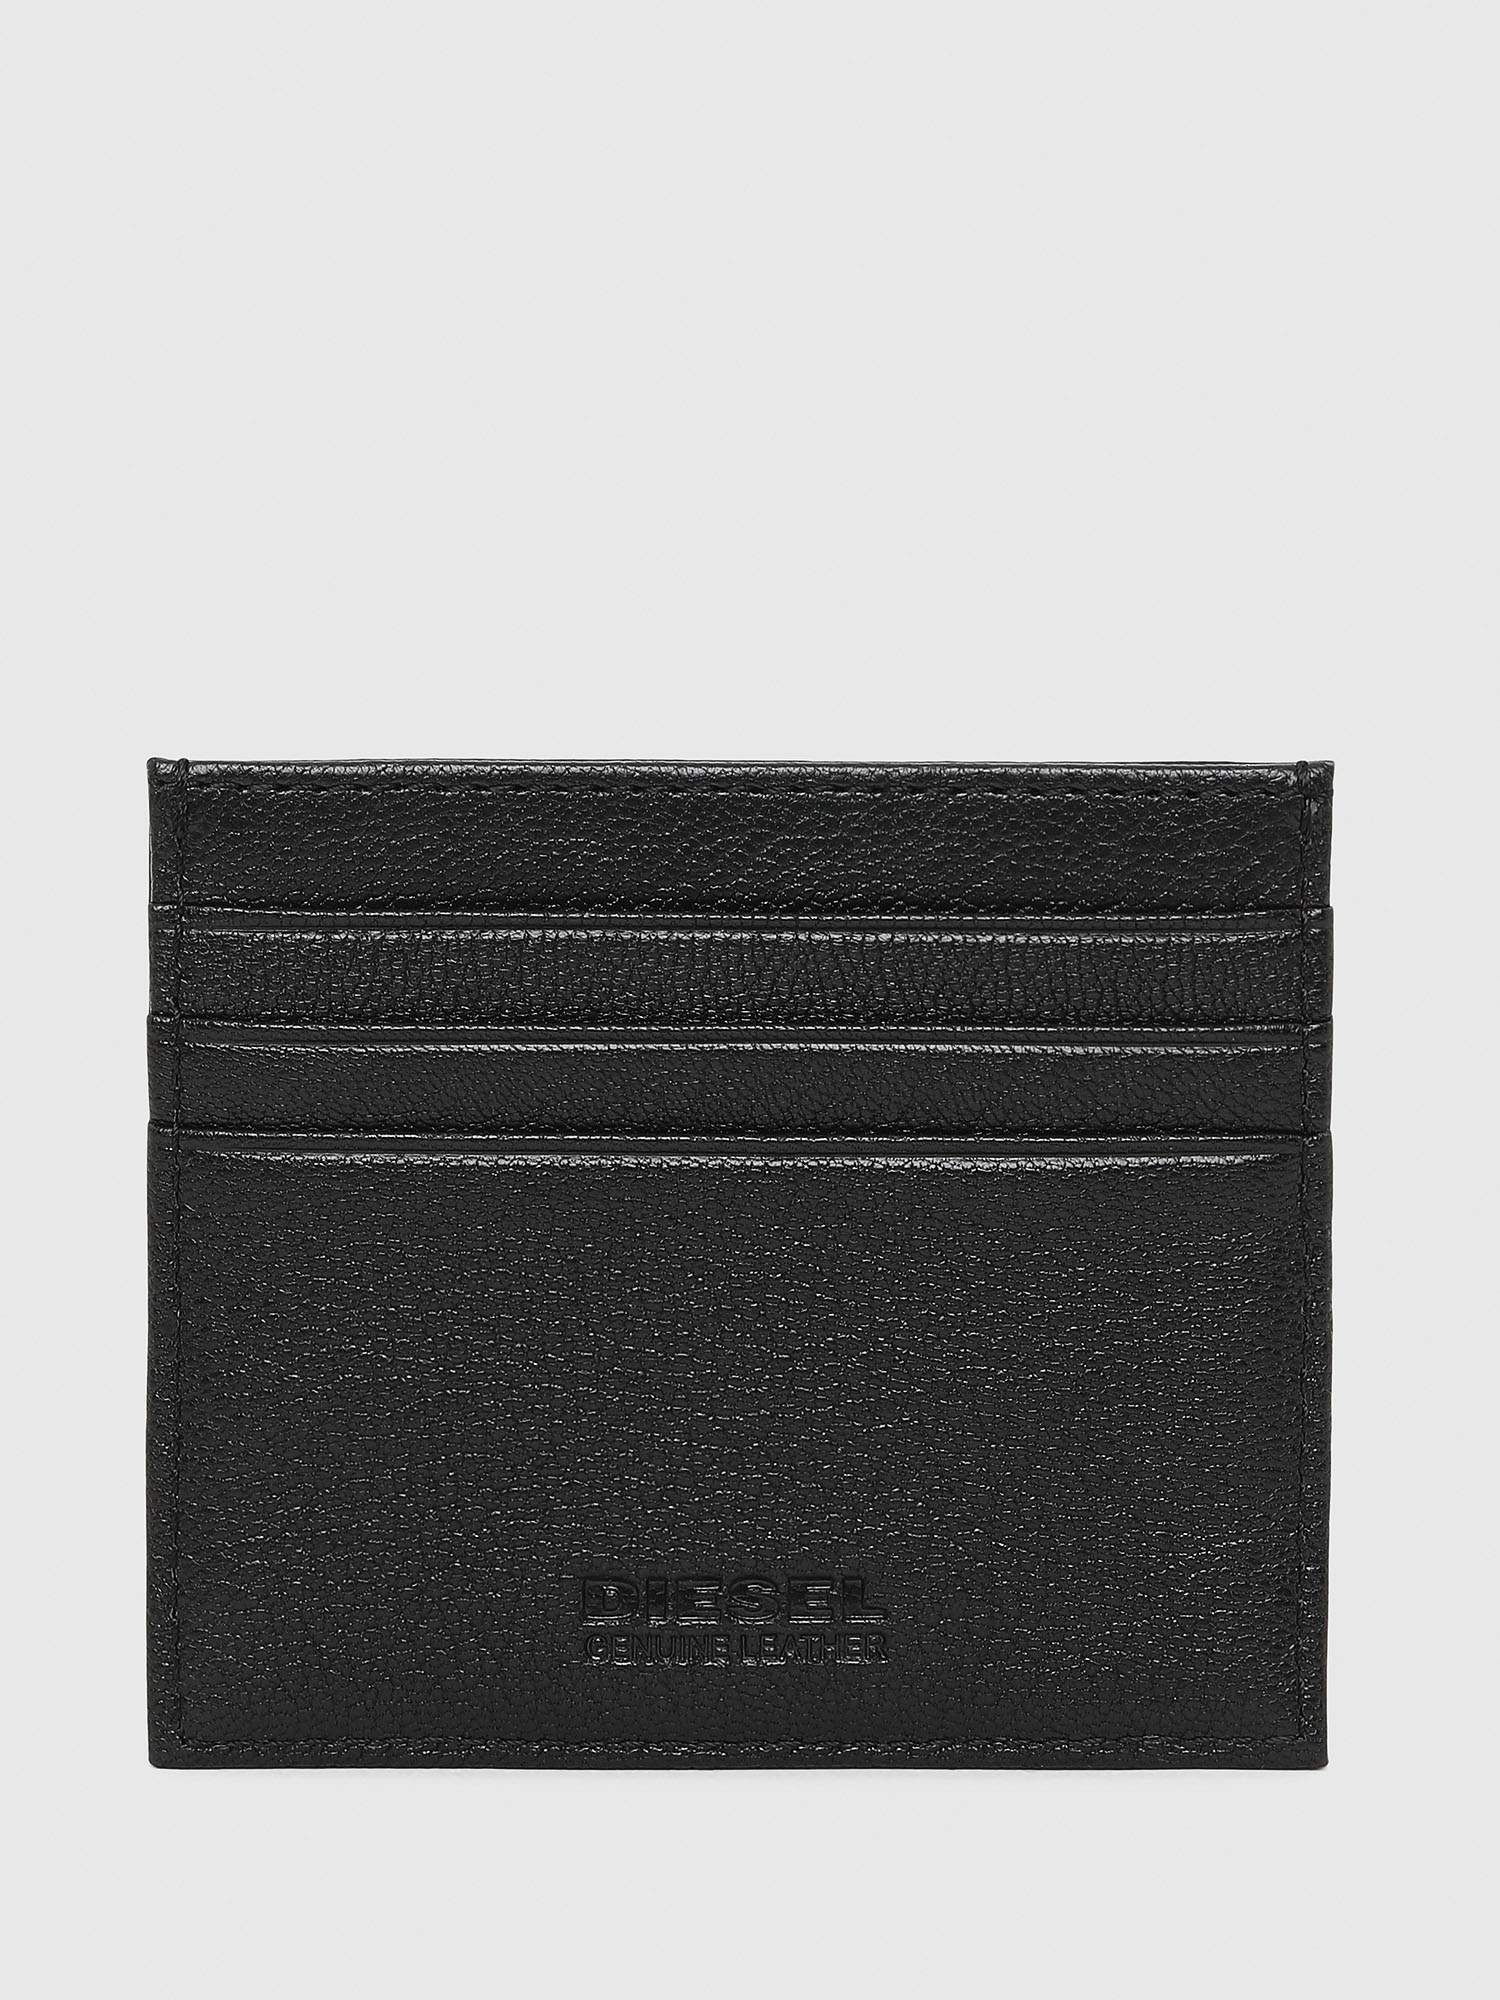 Diesel - JOHNAS,  - Card cases - Image 2